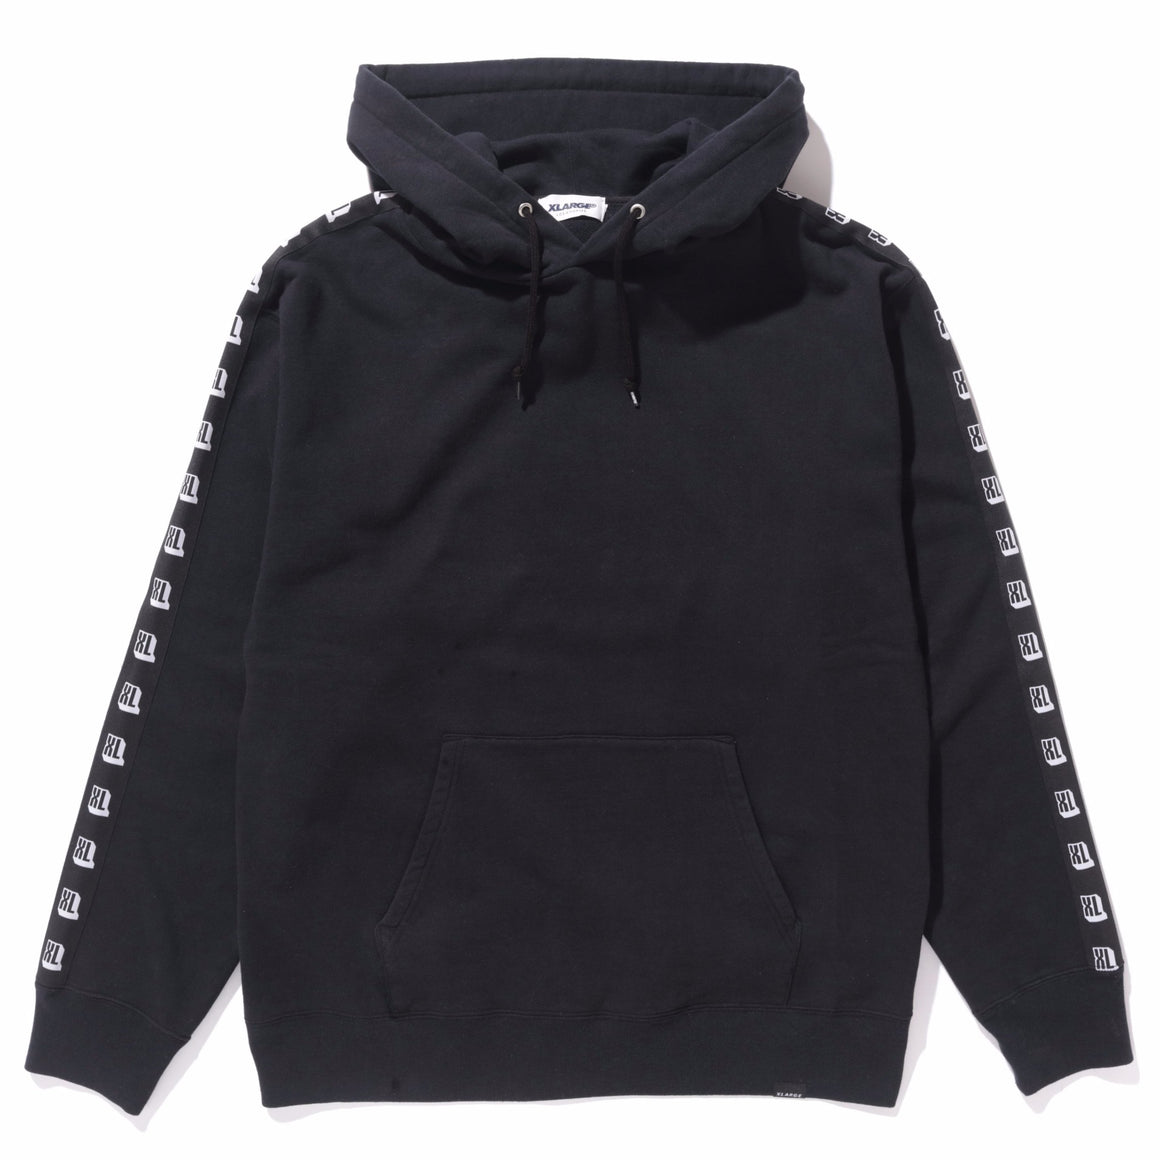 TAPED PULLOVER HOODED SWEAT - X-Large Clothing